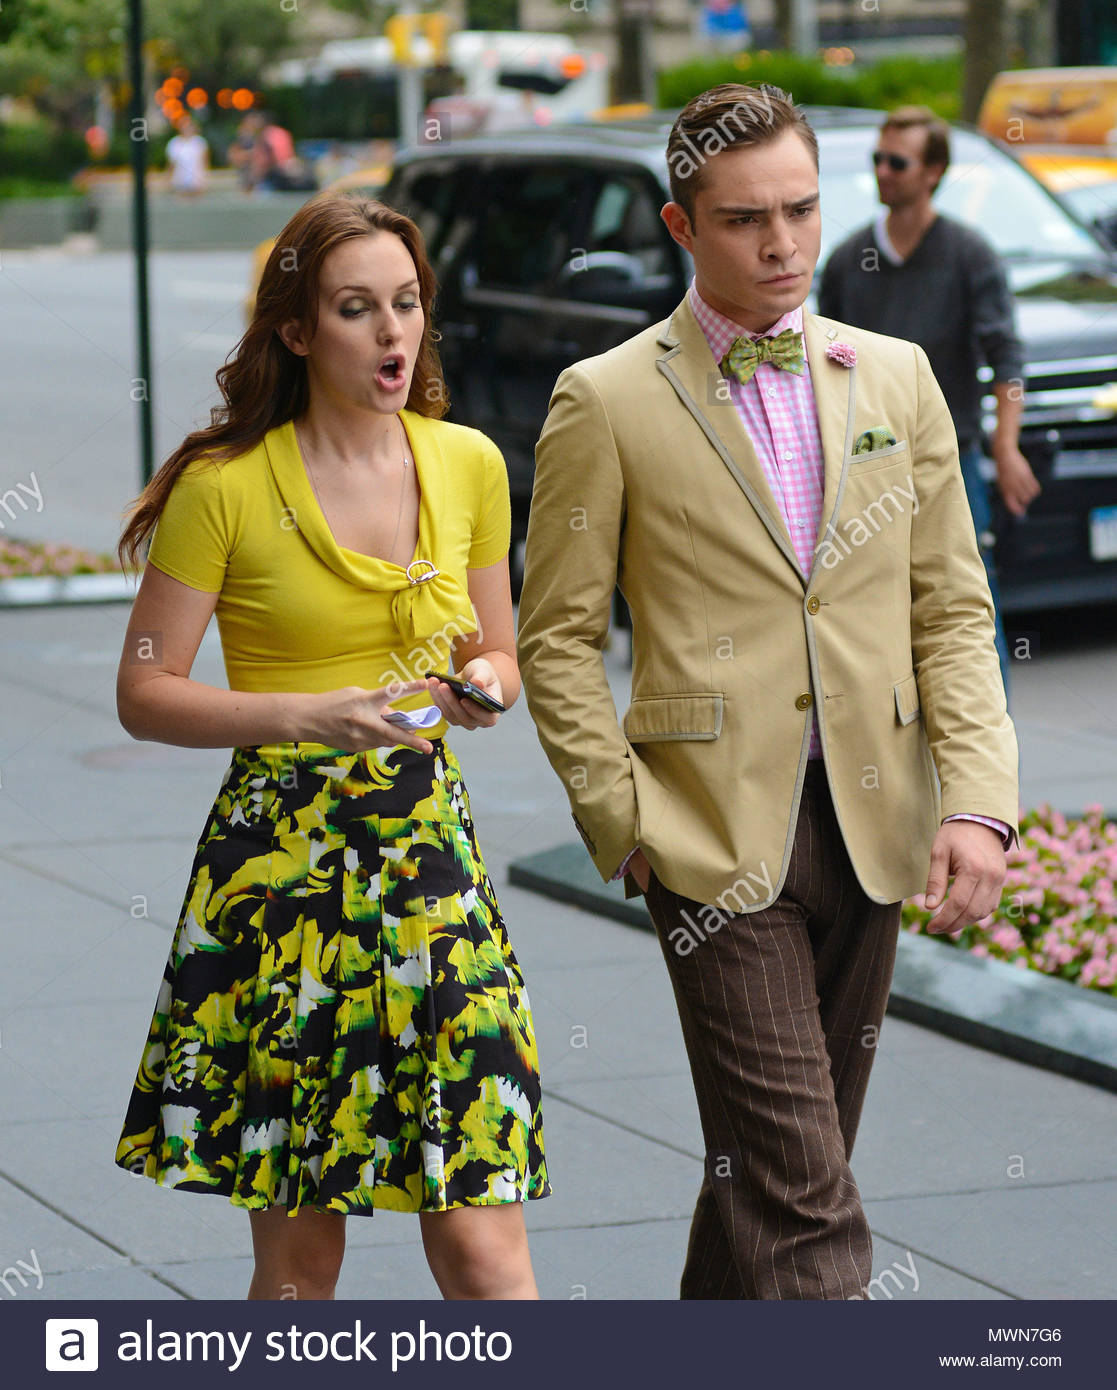 leighton meester and ed westwick movie